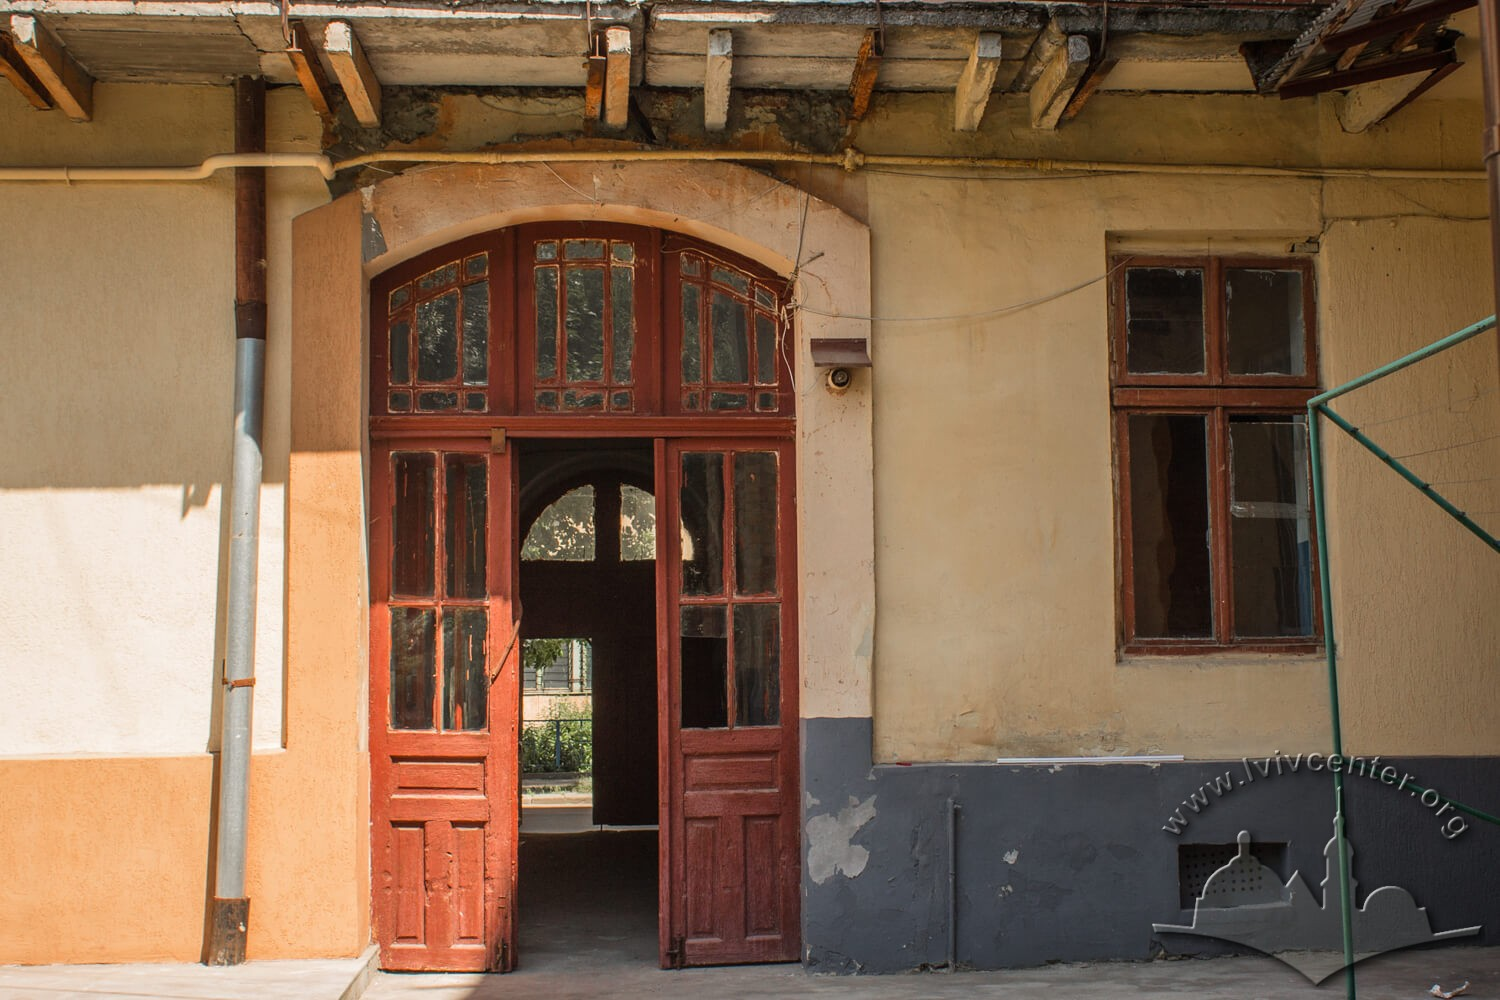 Vul. Zavodska, 36. Doors from the courtyard to the passageway which leads to the street/Photo courtesy of Olha Zarechnyuk, 2016